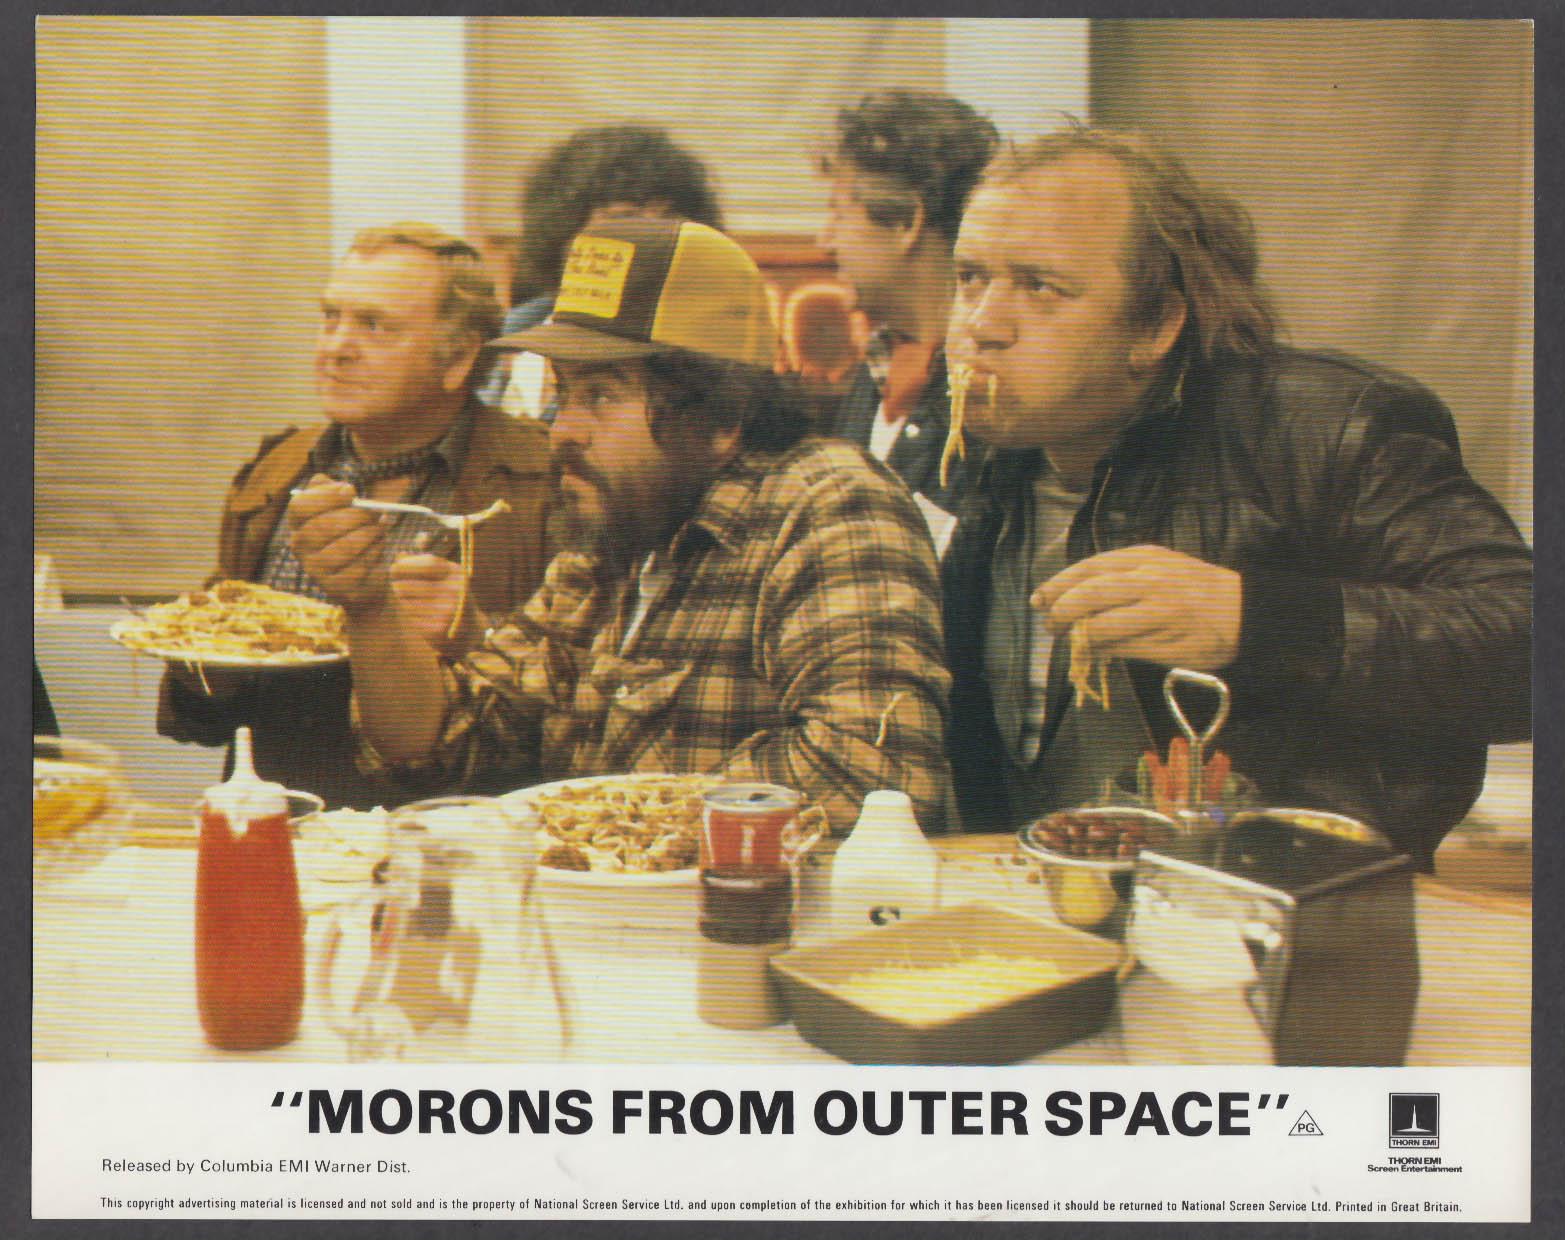 Morons from Outer Space 8x10 lobby card 1985 Mel Smith